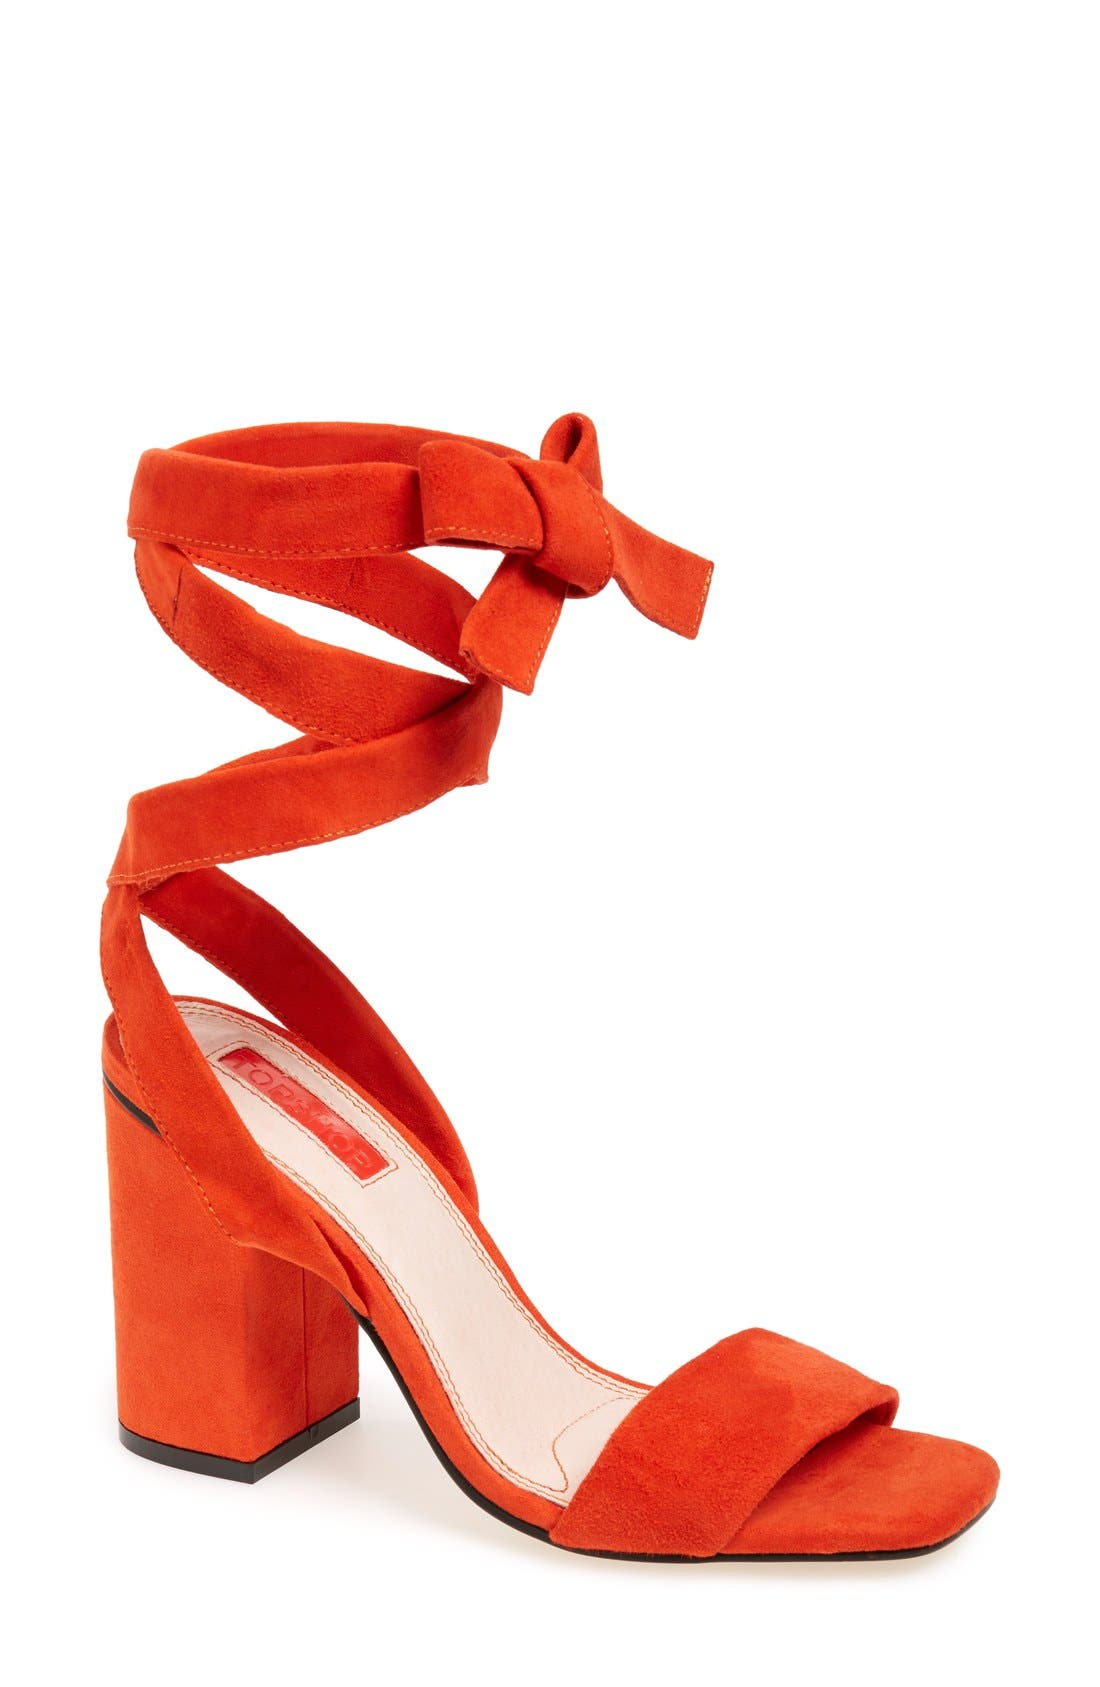 Alternate Image 1 Selected - Topshop 'Rapping' Ankle Strap Sandal (Women)